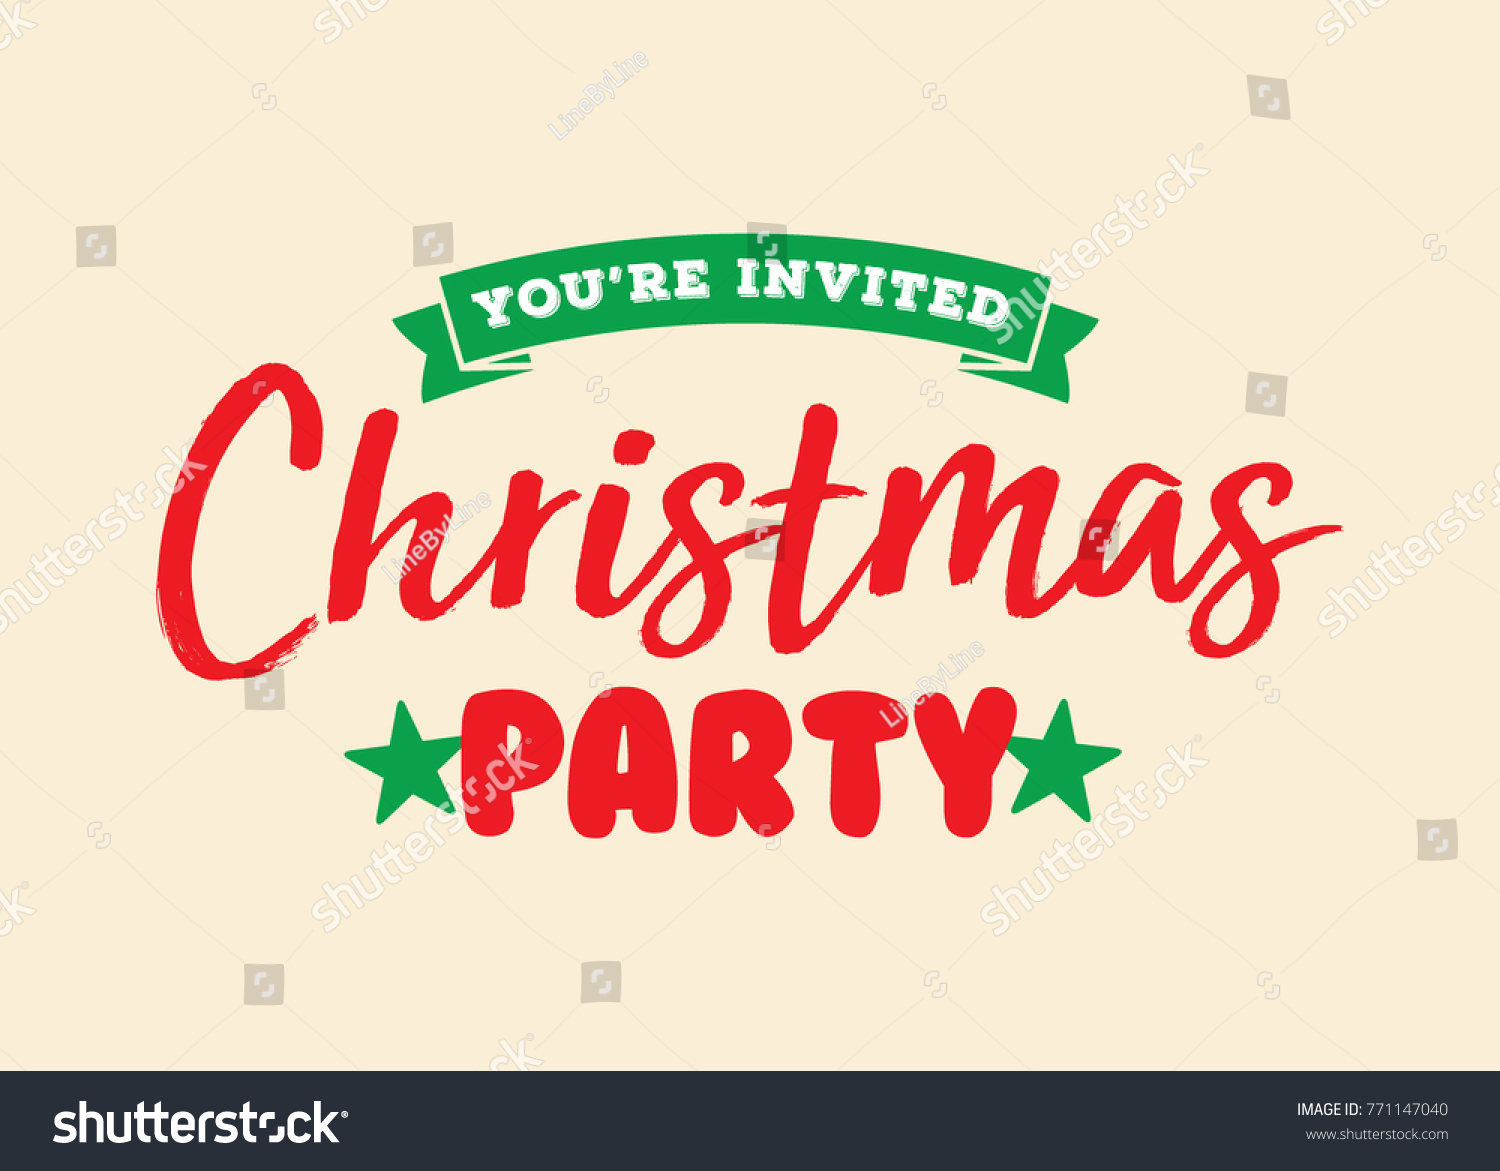 Christmas Party Invitation Vector Text Background Stock Vector ...